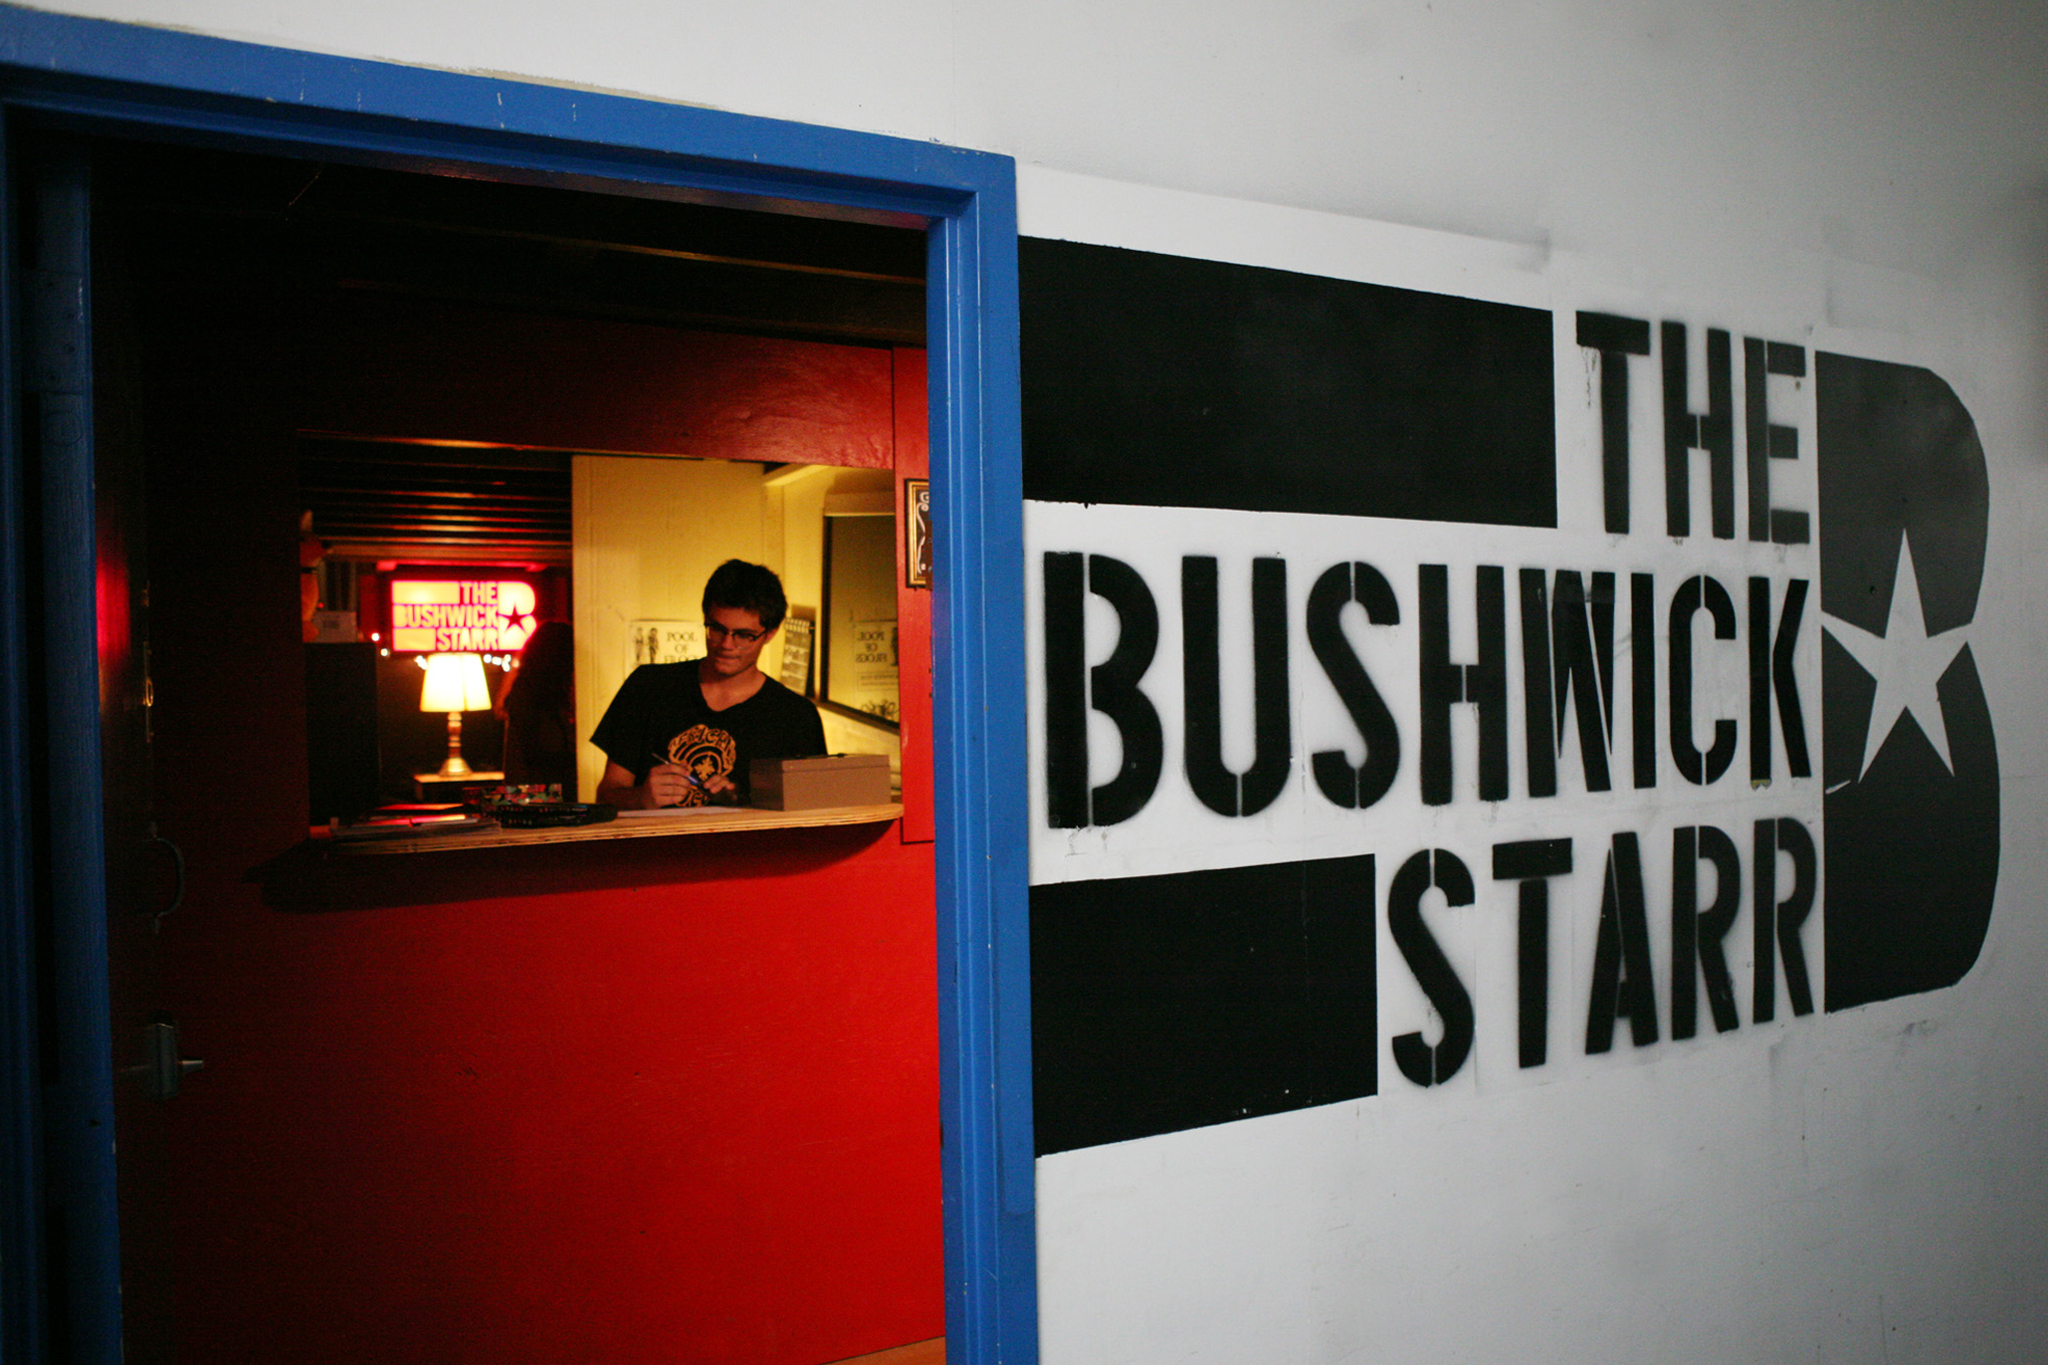 The Bushwick Starr